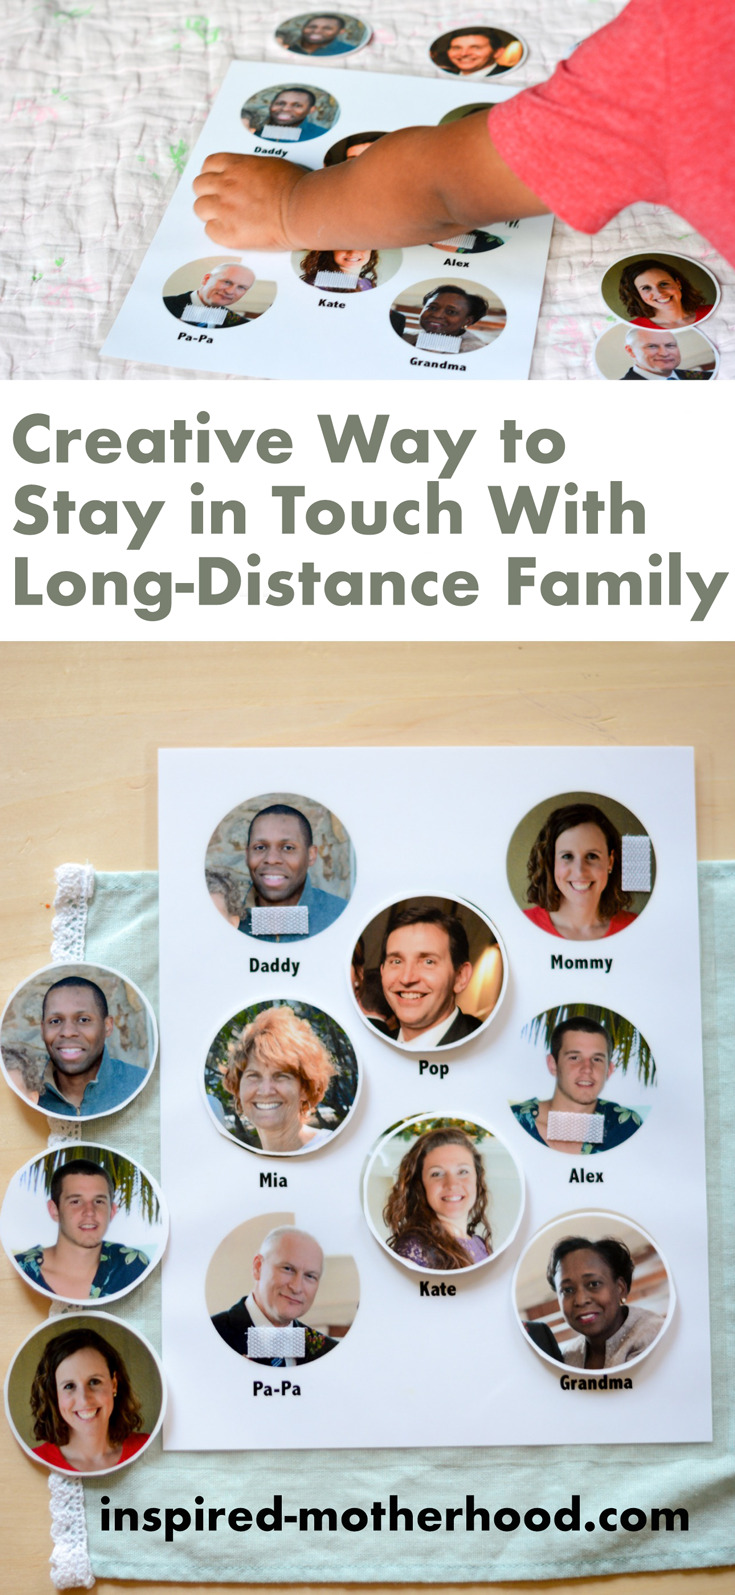 What a creative way to stay in touch with family who lives far away! Make this kid's activity to help build long-distance family relationships.